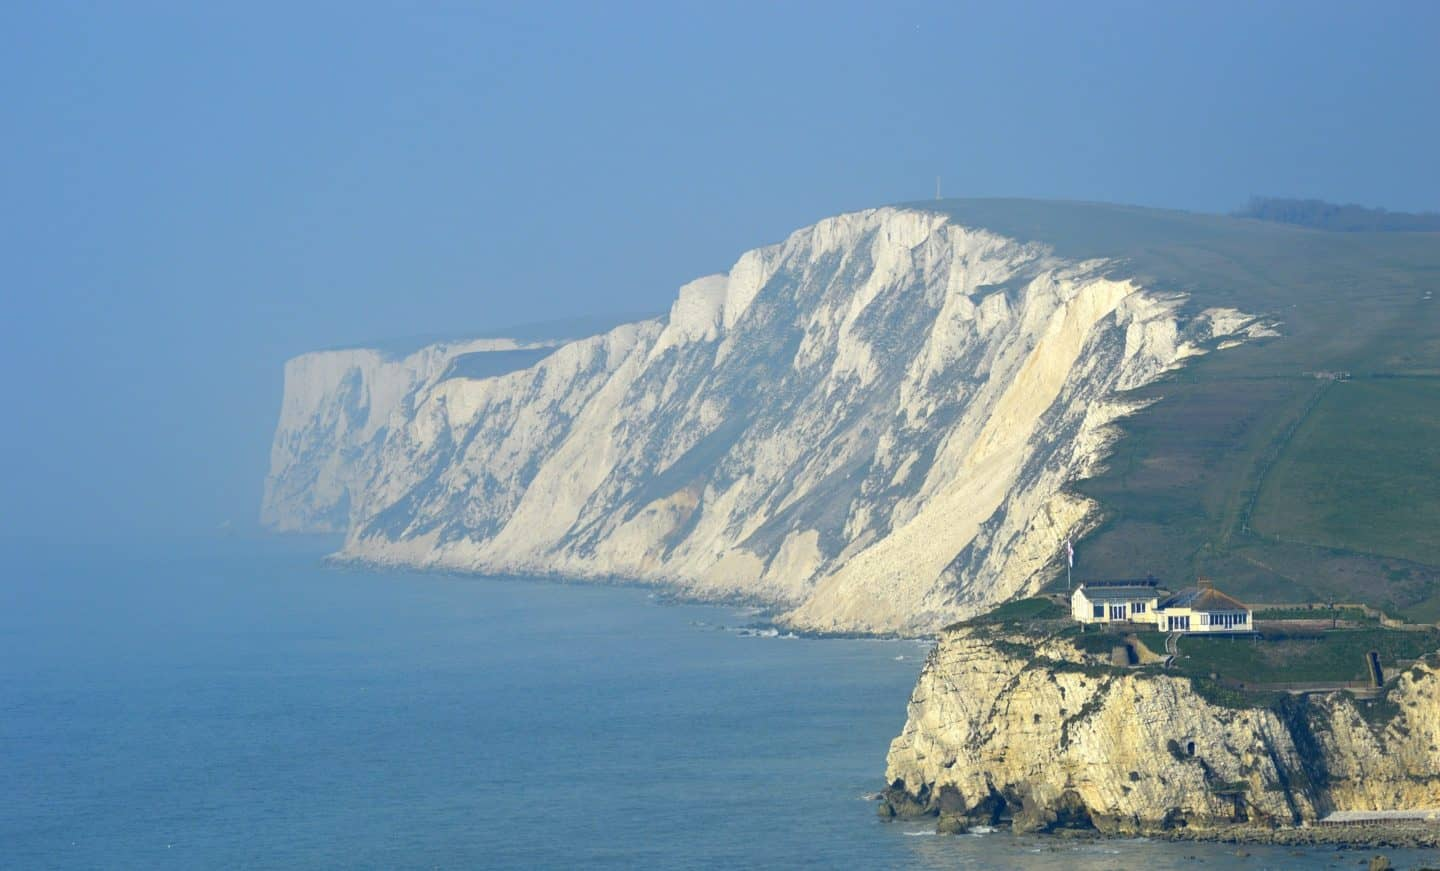 Taking a Trip to the Isle of Wight: 5 Things to Do